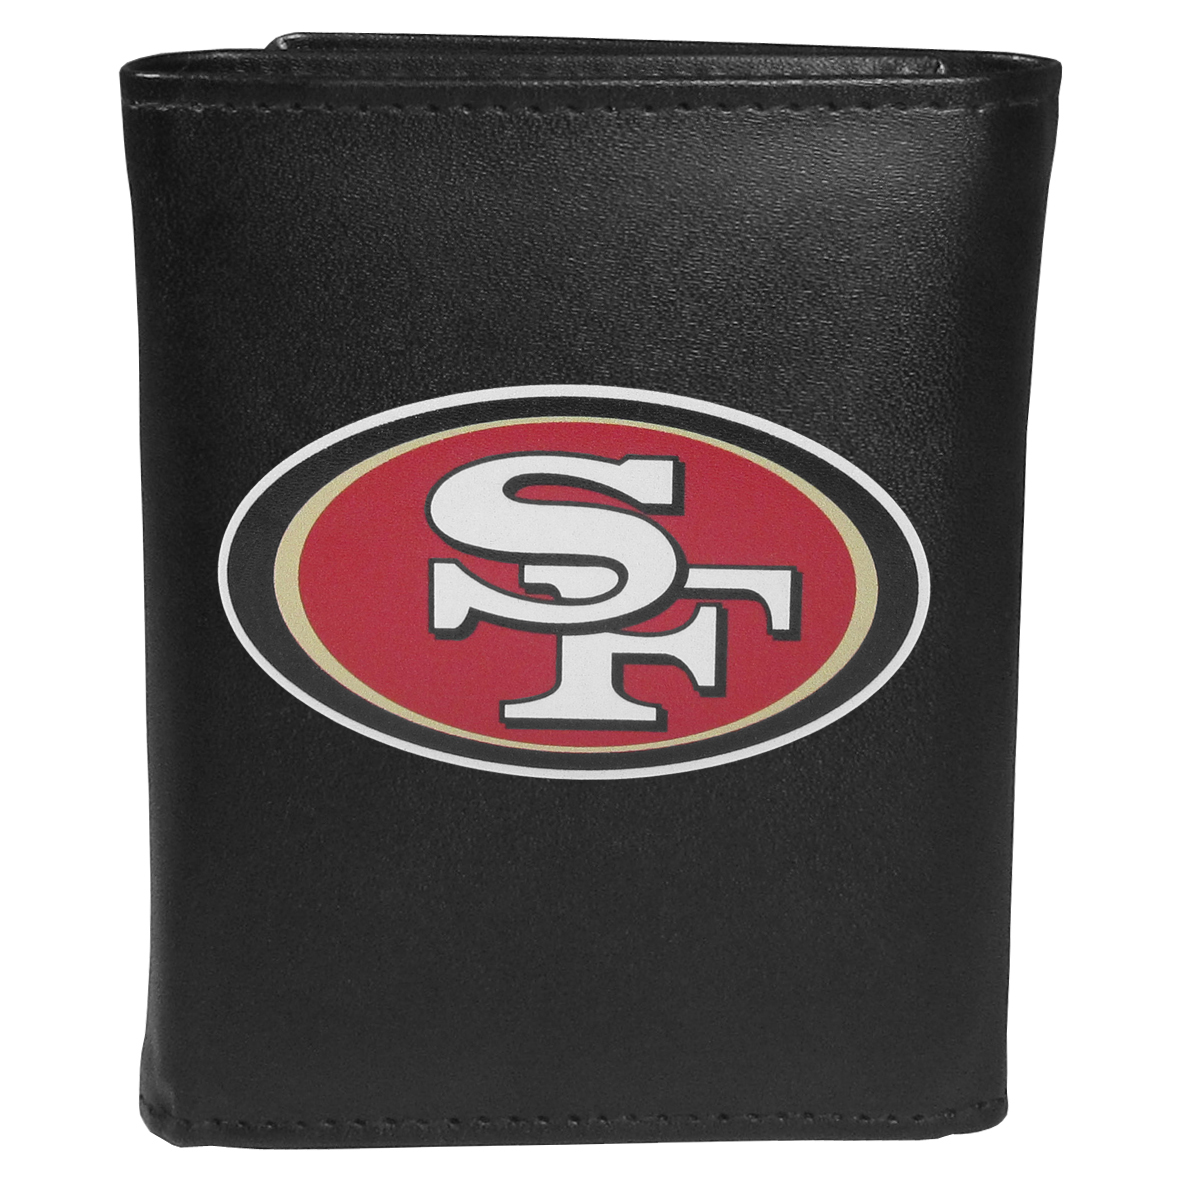 San Francisco 49ers Tri-fold Wallet Large Logo - Sports fans do not have to sacrifice style with this classic tri-fold wallet that sports theSan Francisco 49ers?extra large logo. This men's fashion accessory has a leather grain look and expert craftmanship for a quality wallet at a great price. The wallet features inner credit card slots, windowed ID slot and a large billfold pocket. The front of the wallet features an extra large printed team logo.